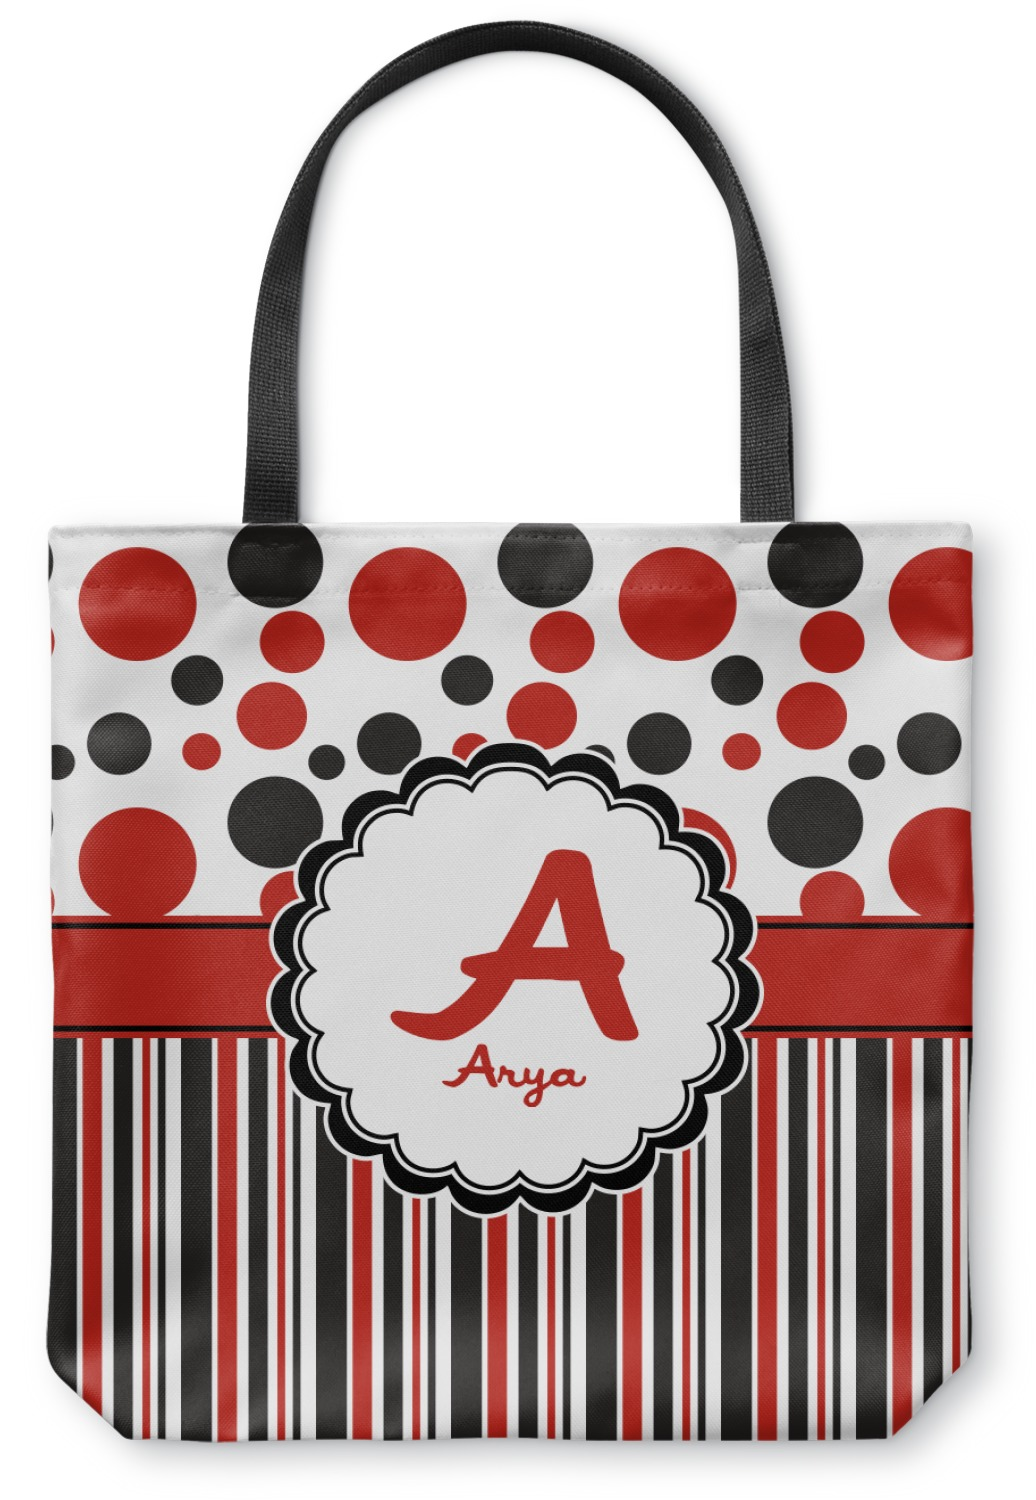 f8f06bff1 Red & Black Dots & Stripes Canvas Tote Bag (Personalized ...